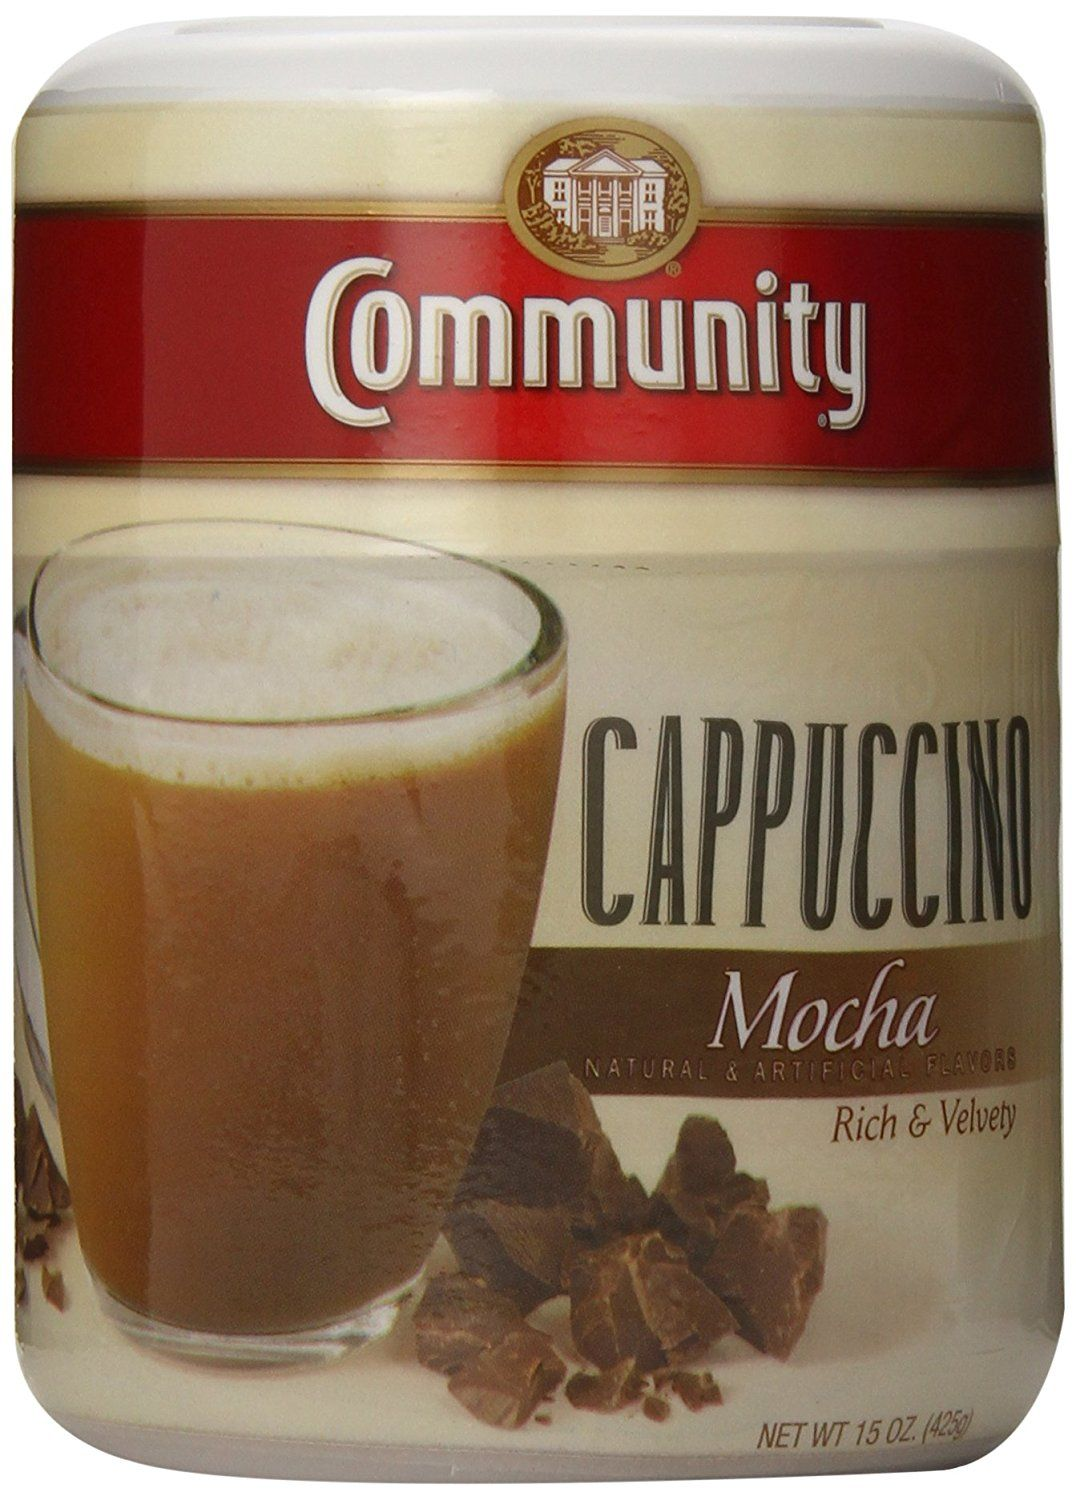 Community coffee instant cappuccino mocha you can find